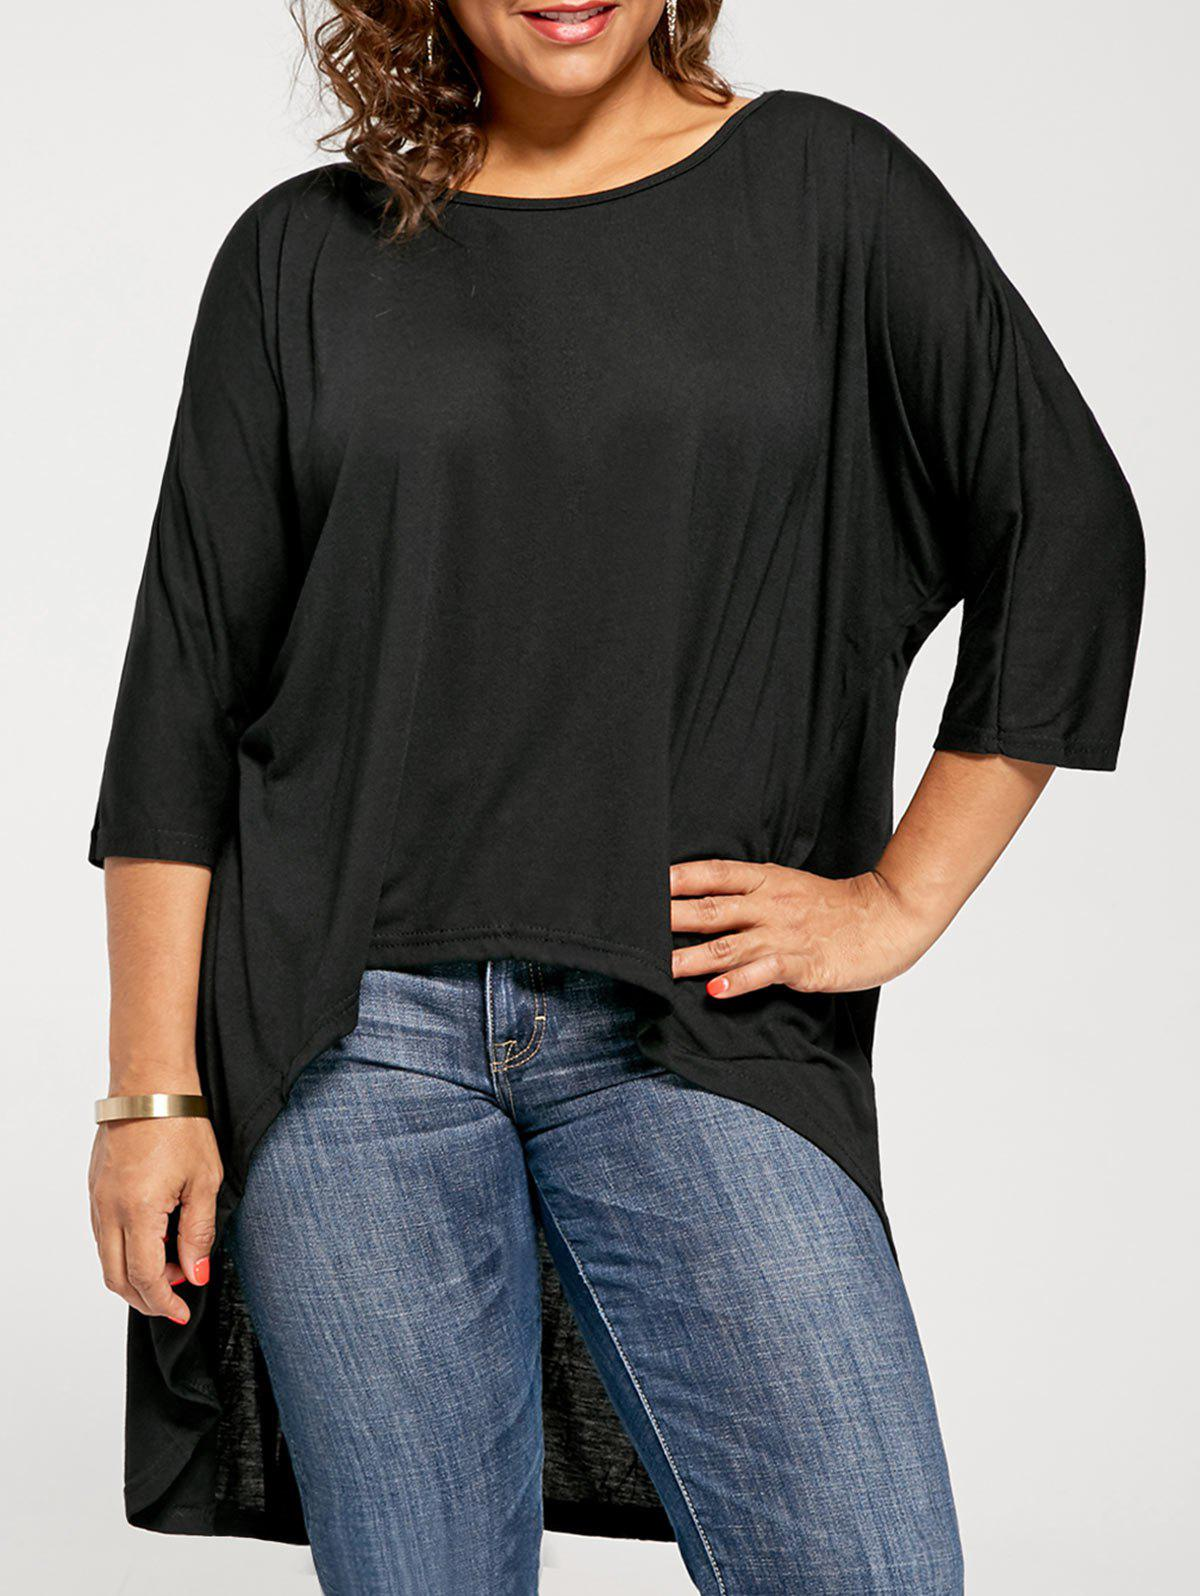 High Low Plus Size Tunic T-shirtWOMEN<br><br>Size: 2XL; Color: BLACK; Material: Polyester; Shirt Length: Long; Sleeve Length: Three Quarter; Collar: Scoop Neck; Style: Casual; Pattern Type: Solid; Weight: 0.3200kg; Package Contents: 1 x T-shirt;